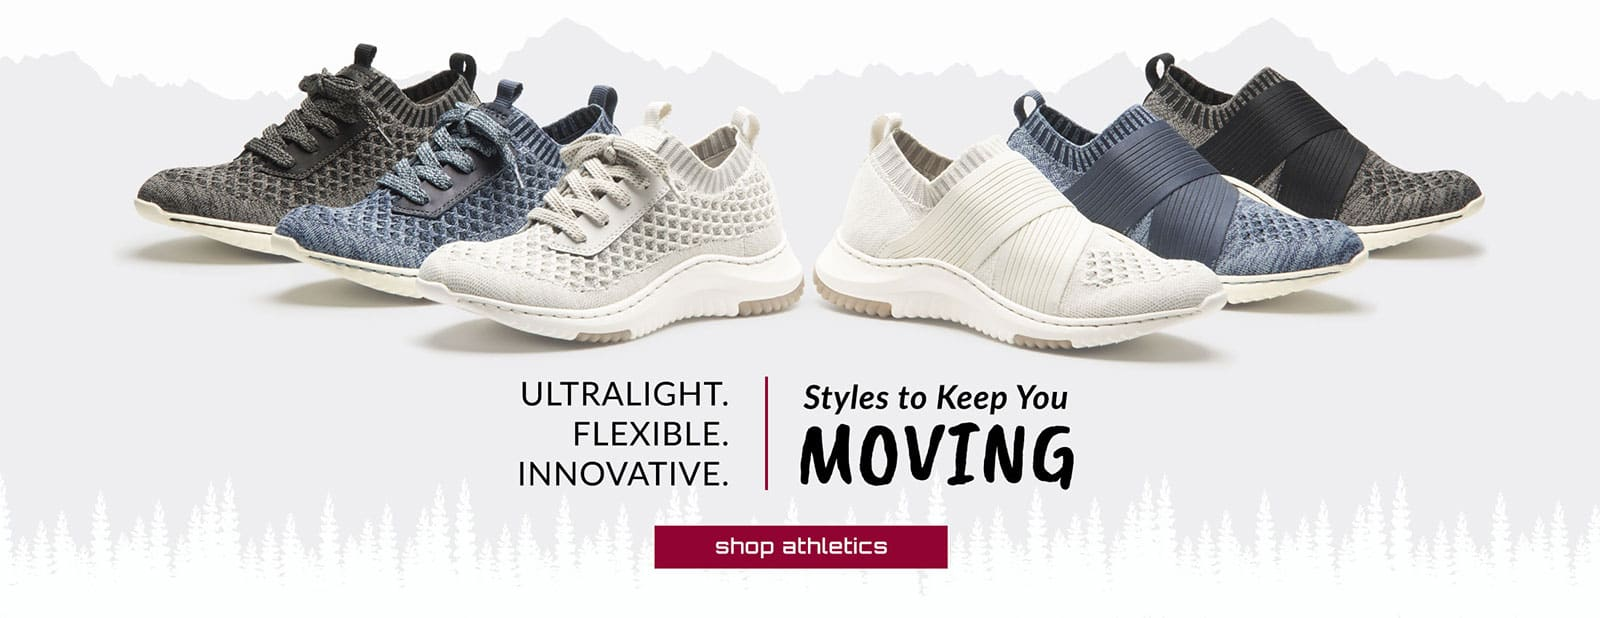 Ultralight. Flexible. Innovative. Styles to Keep You Moving. Featured styles: Eco-Friendly Onie in white, blue and black. Eco-Friendly Ocean in white, blue and black. Shop Athletics.